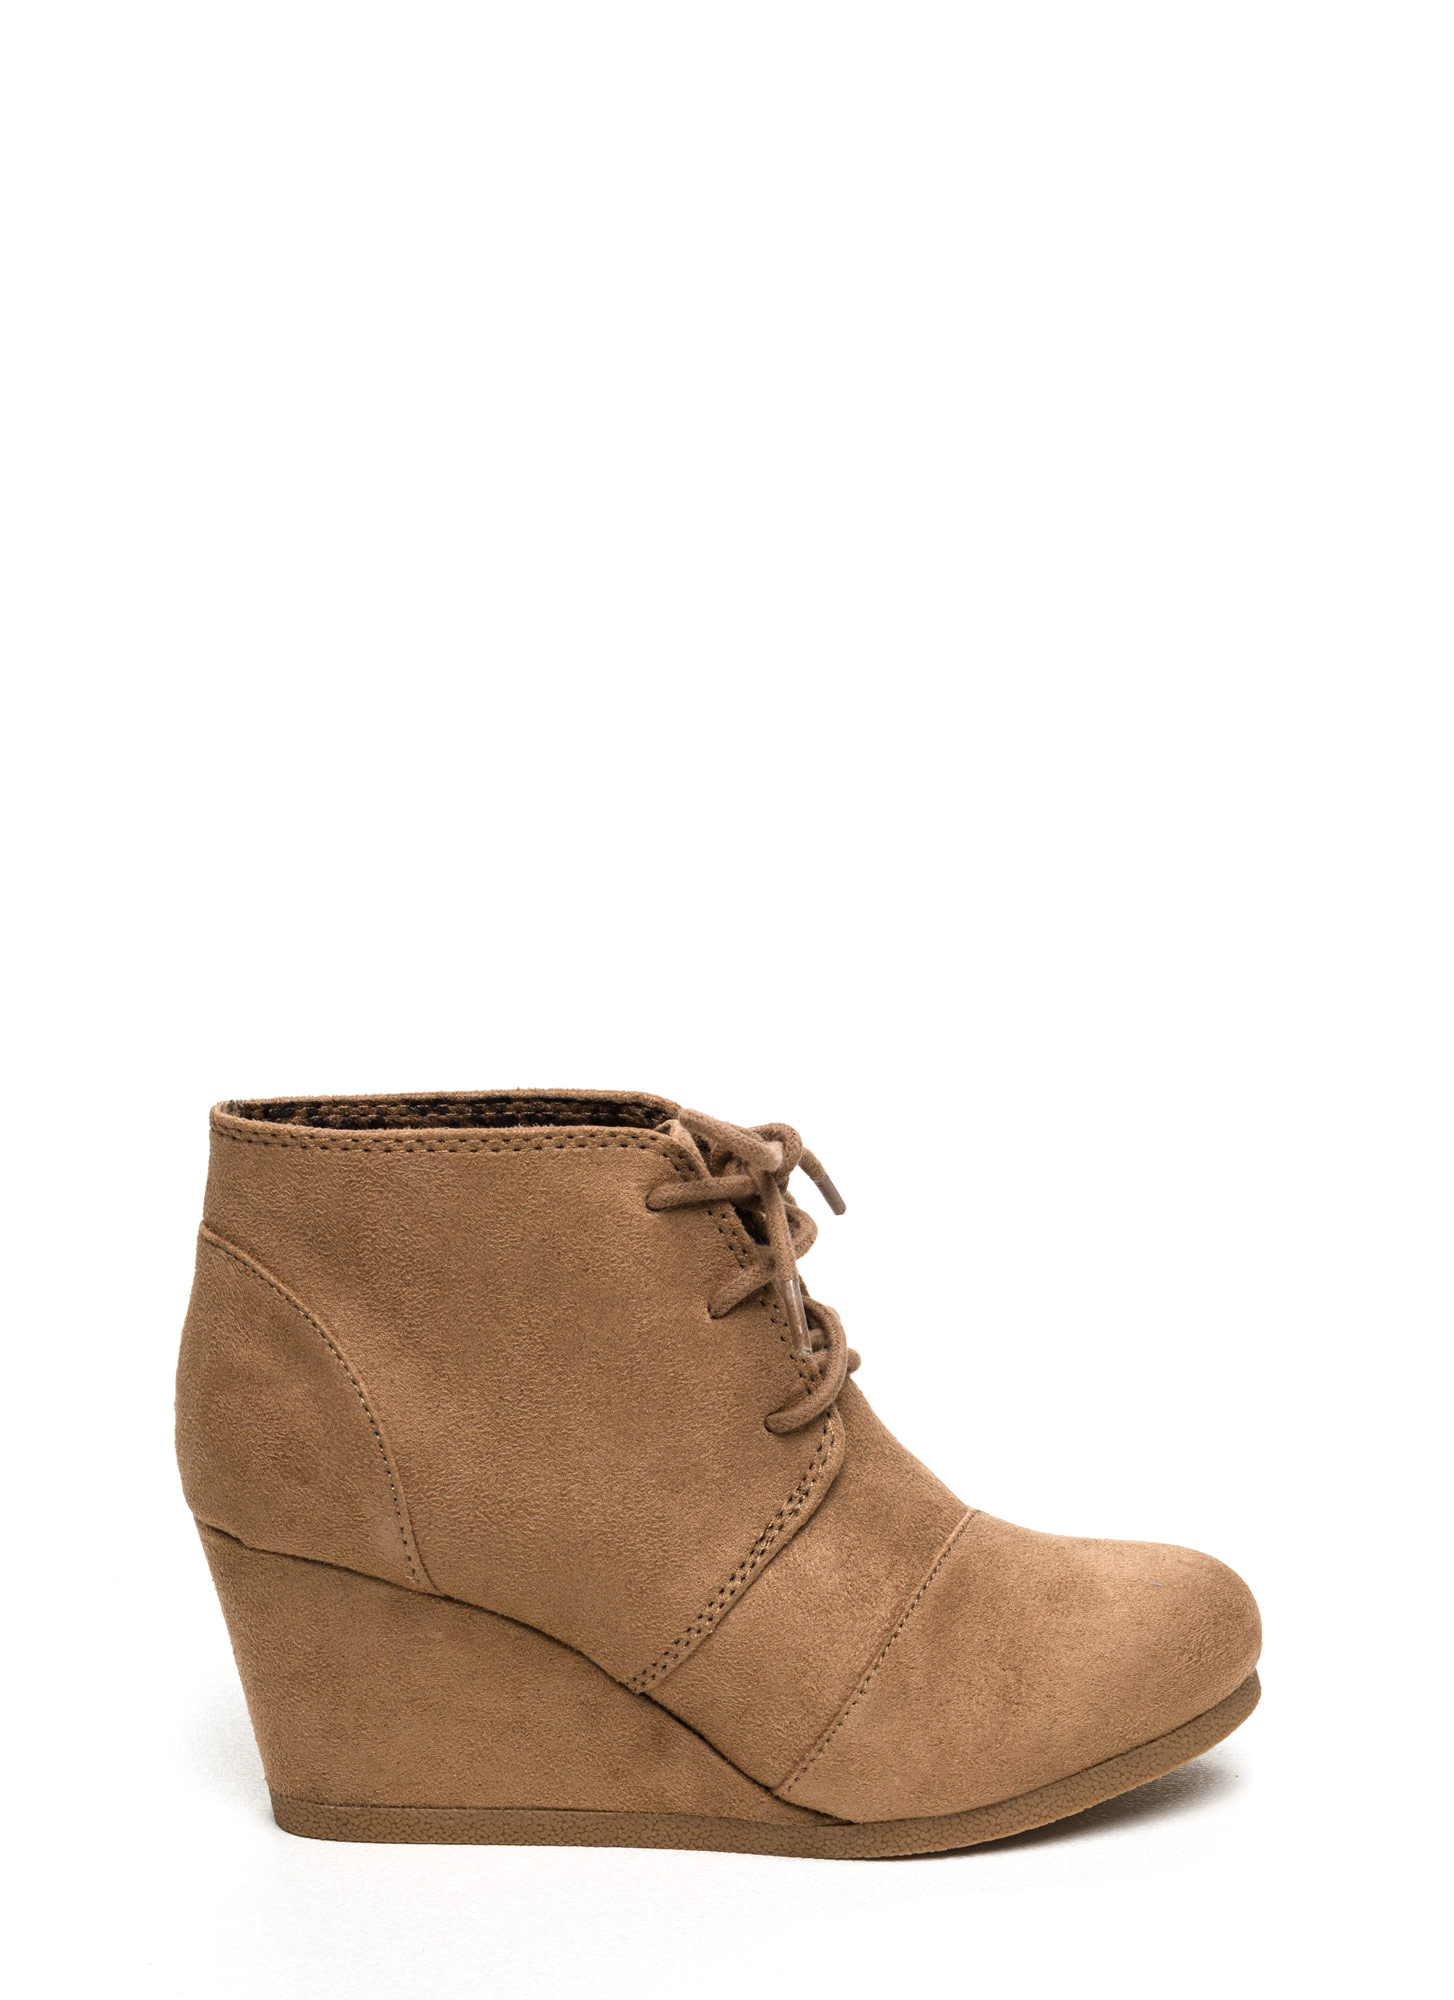 Panel Accent Wedge Booties NATURAL